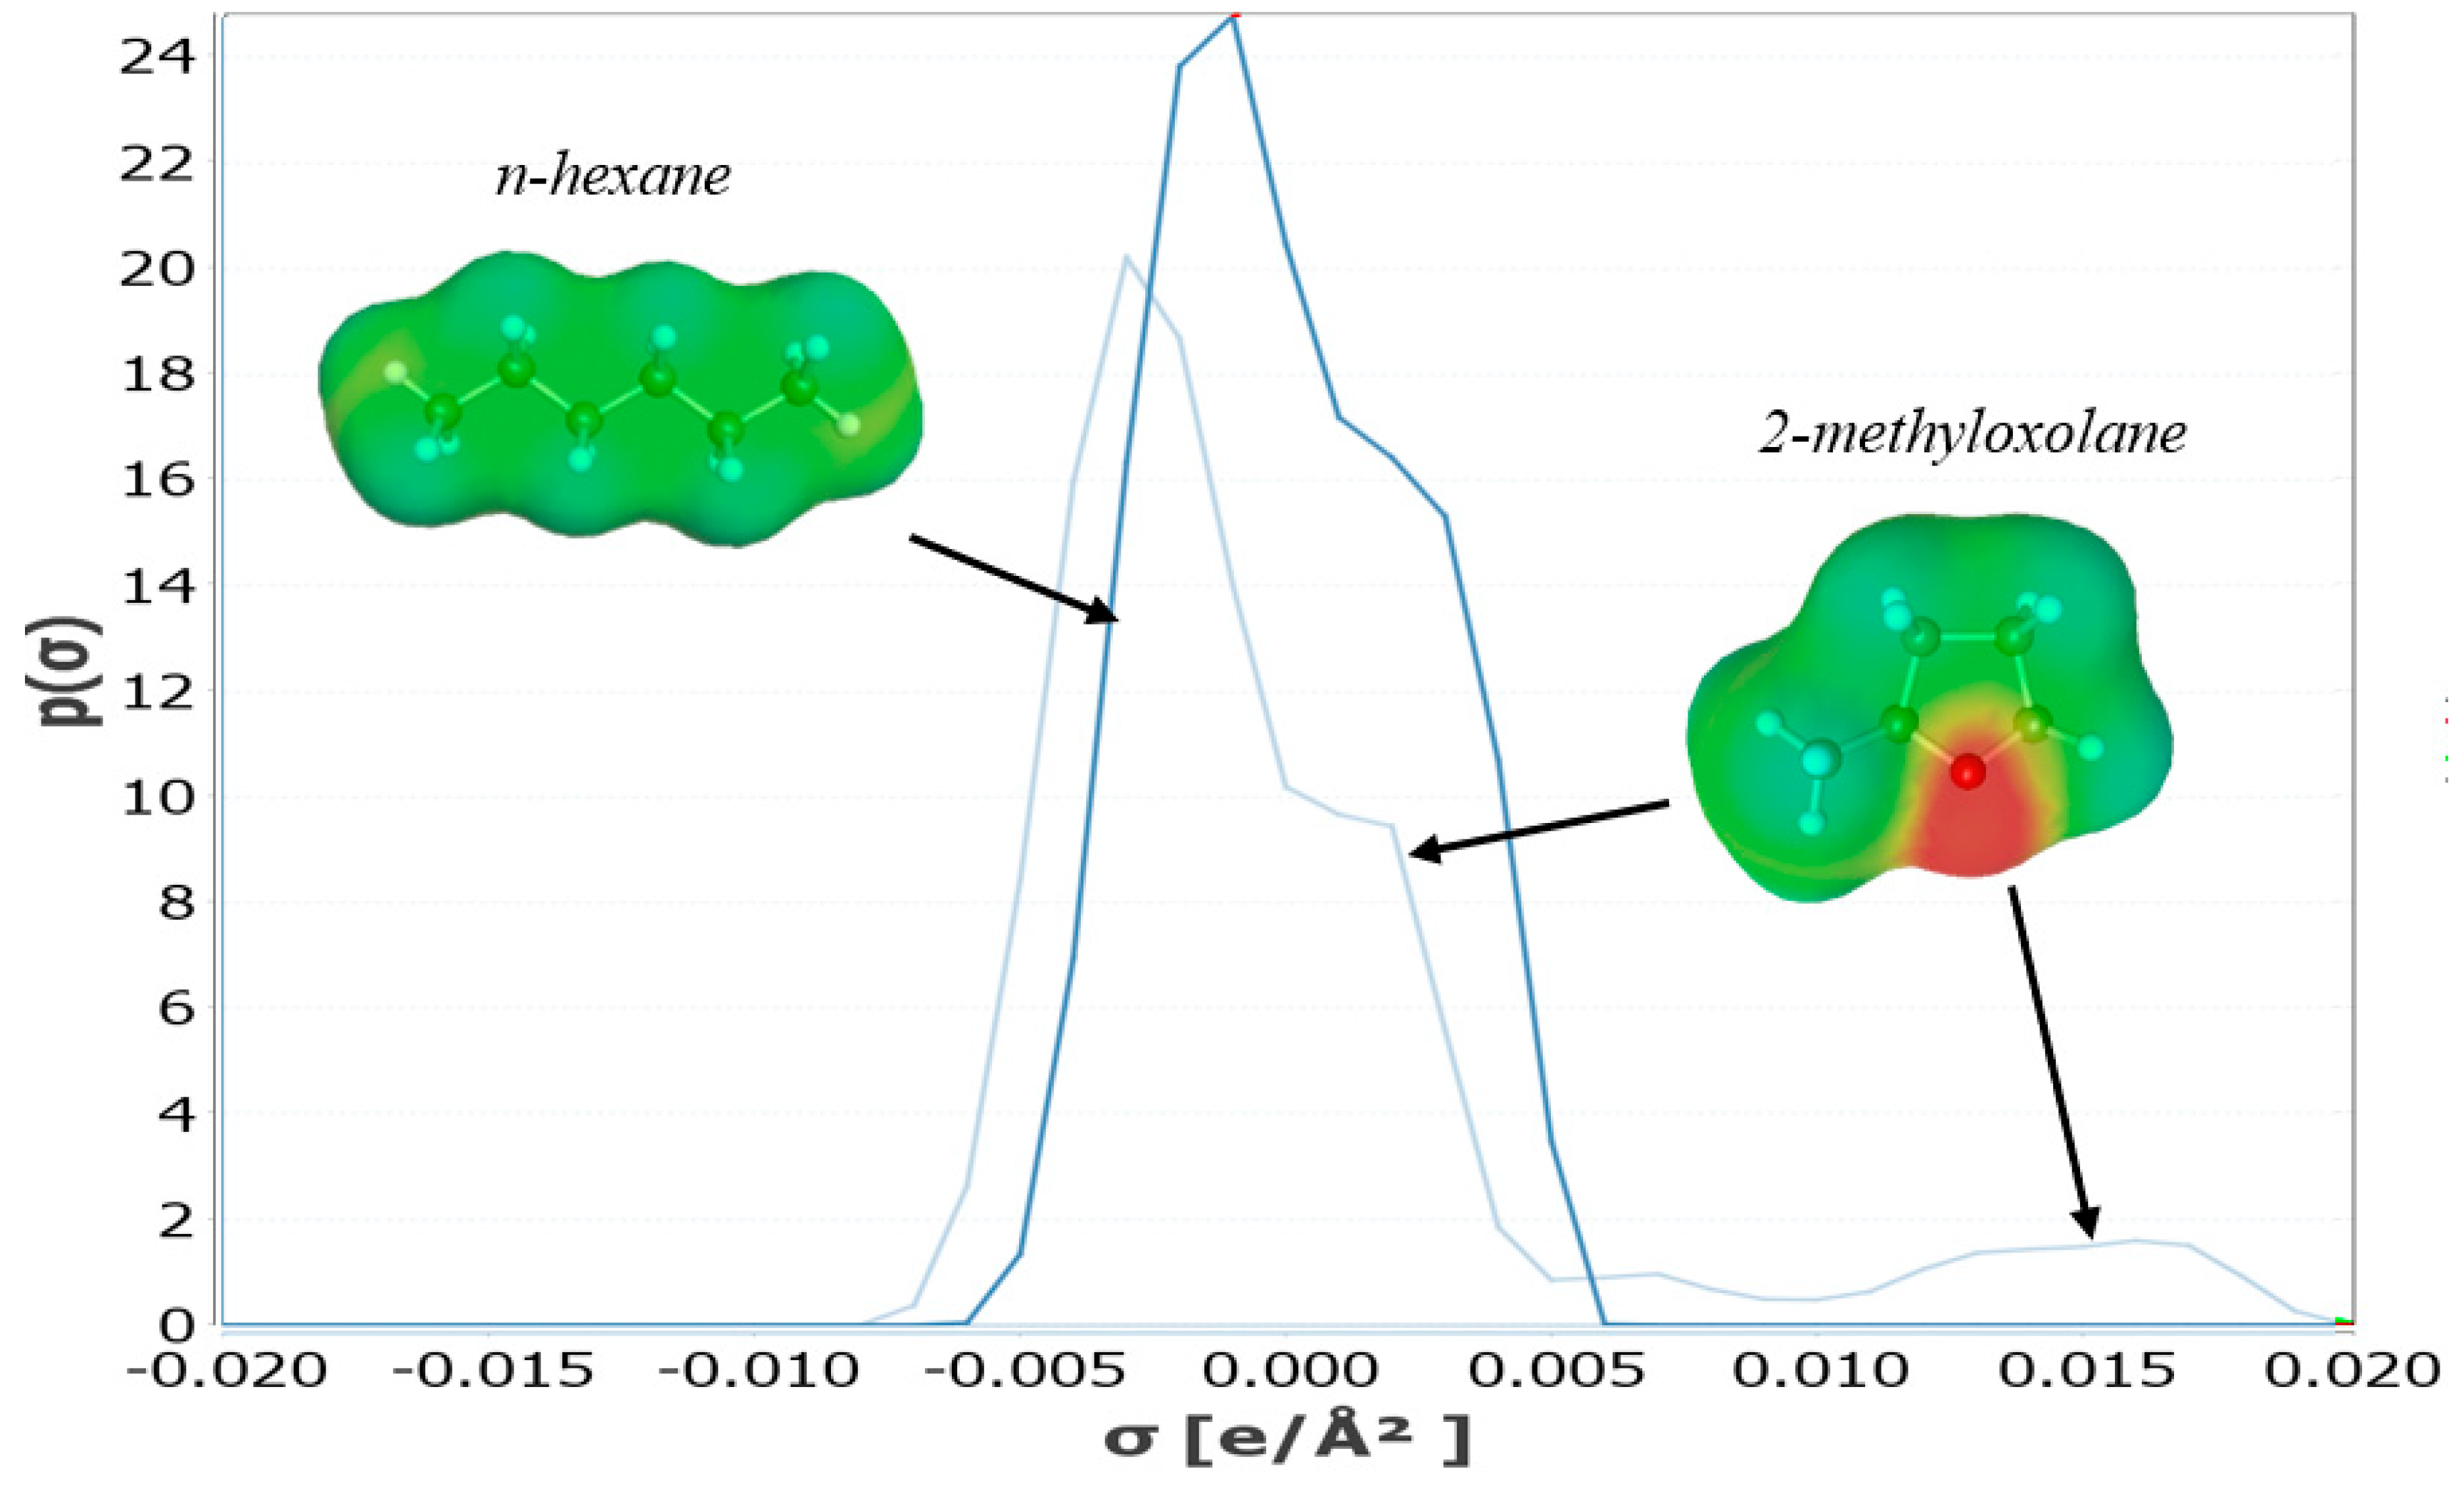 Molecules Free Full Text 2 Methyloxolane 2 Meox As Sustainable Lipophilic Solvent To Substitute Hexane For Green Extraction Of Natural Products Properties Applications And Perspectives Html